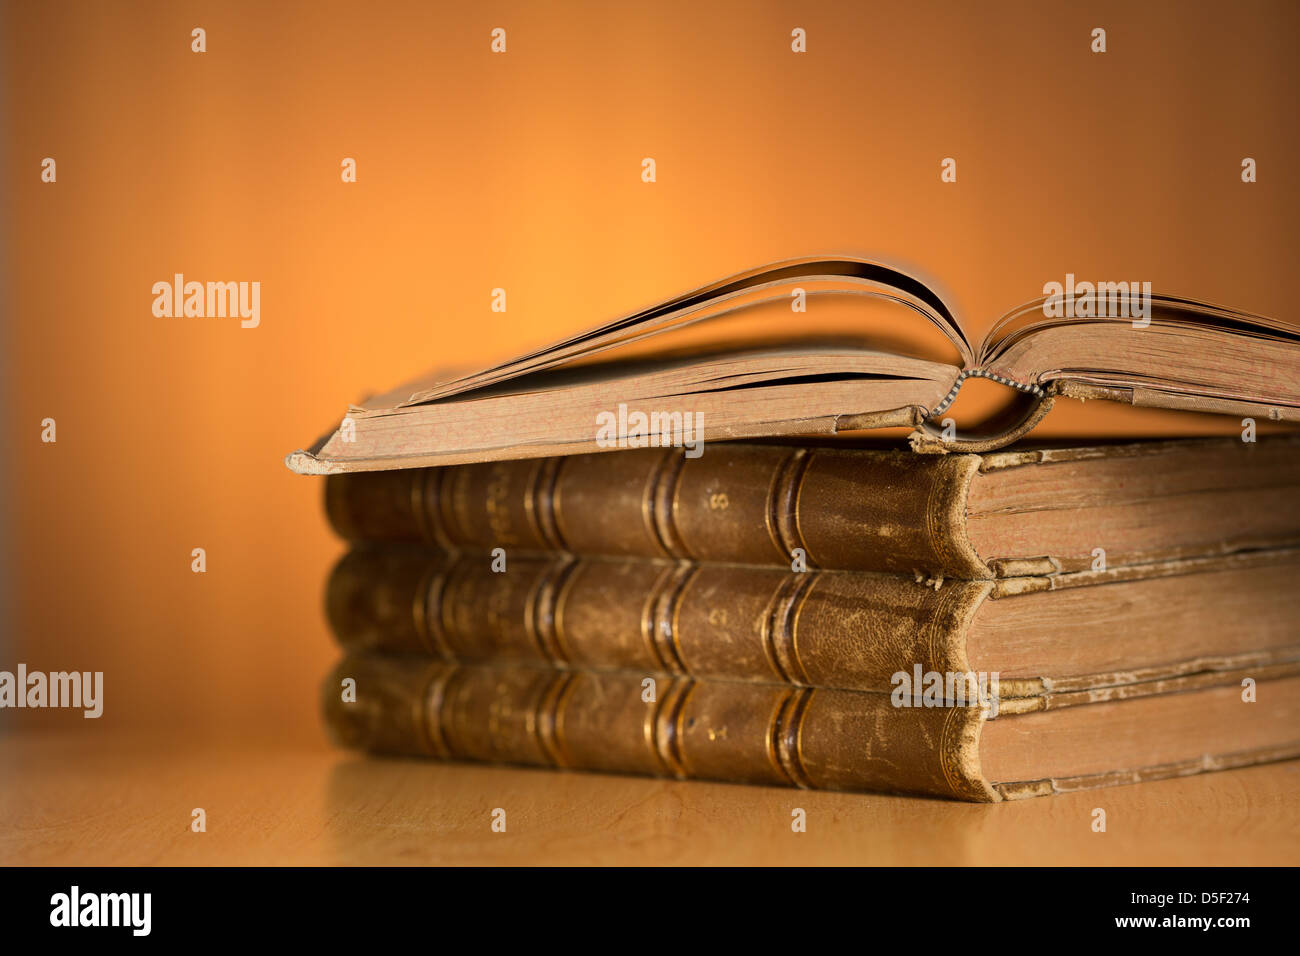 old grunge books on wooden table with free space for your text - Stock Image